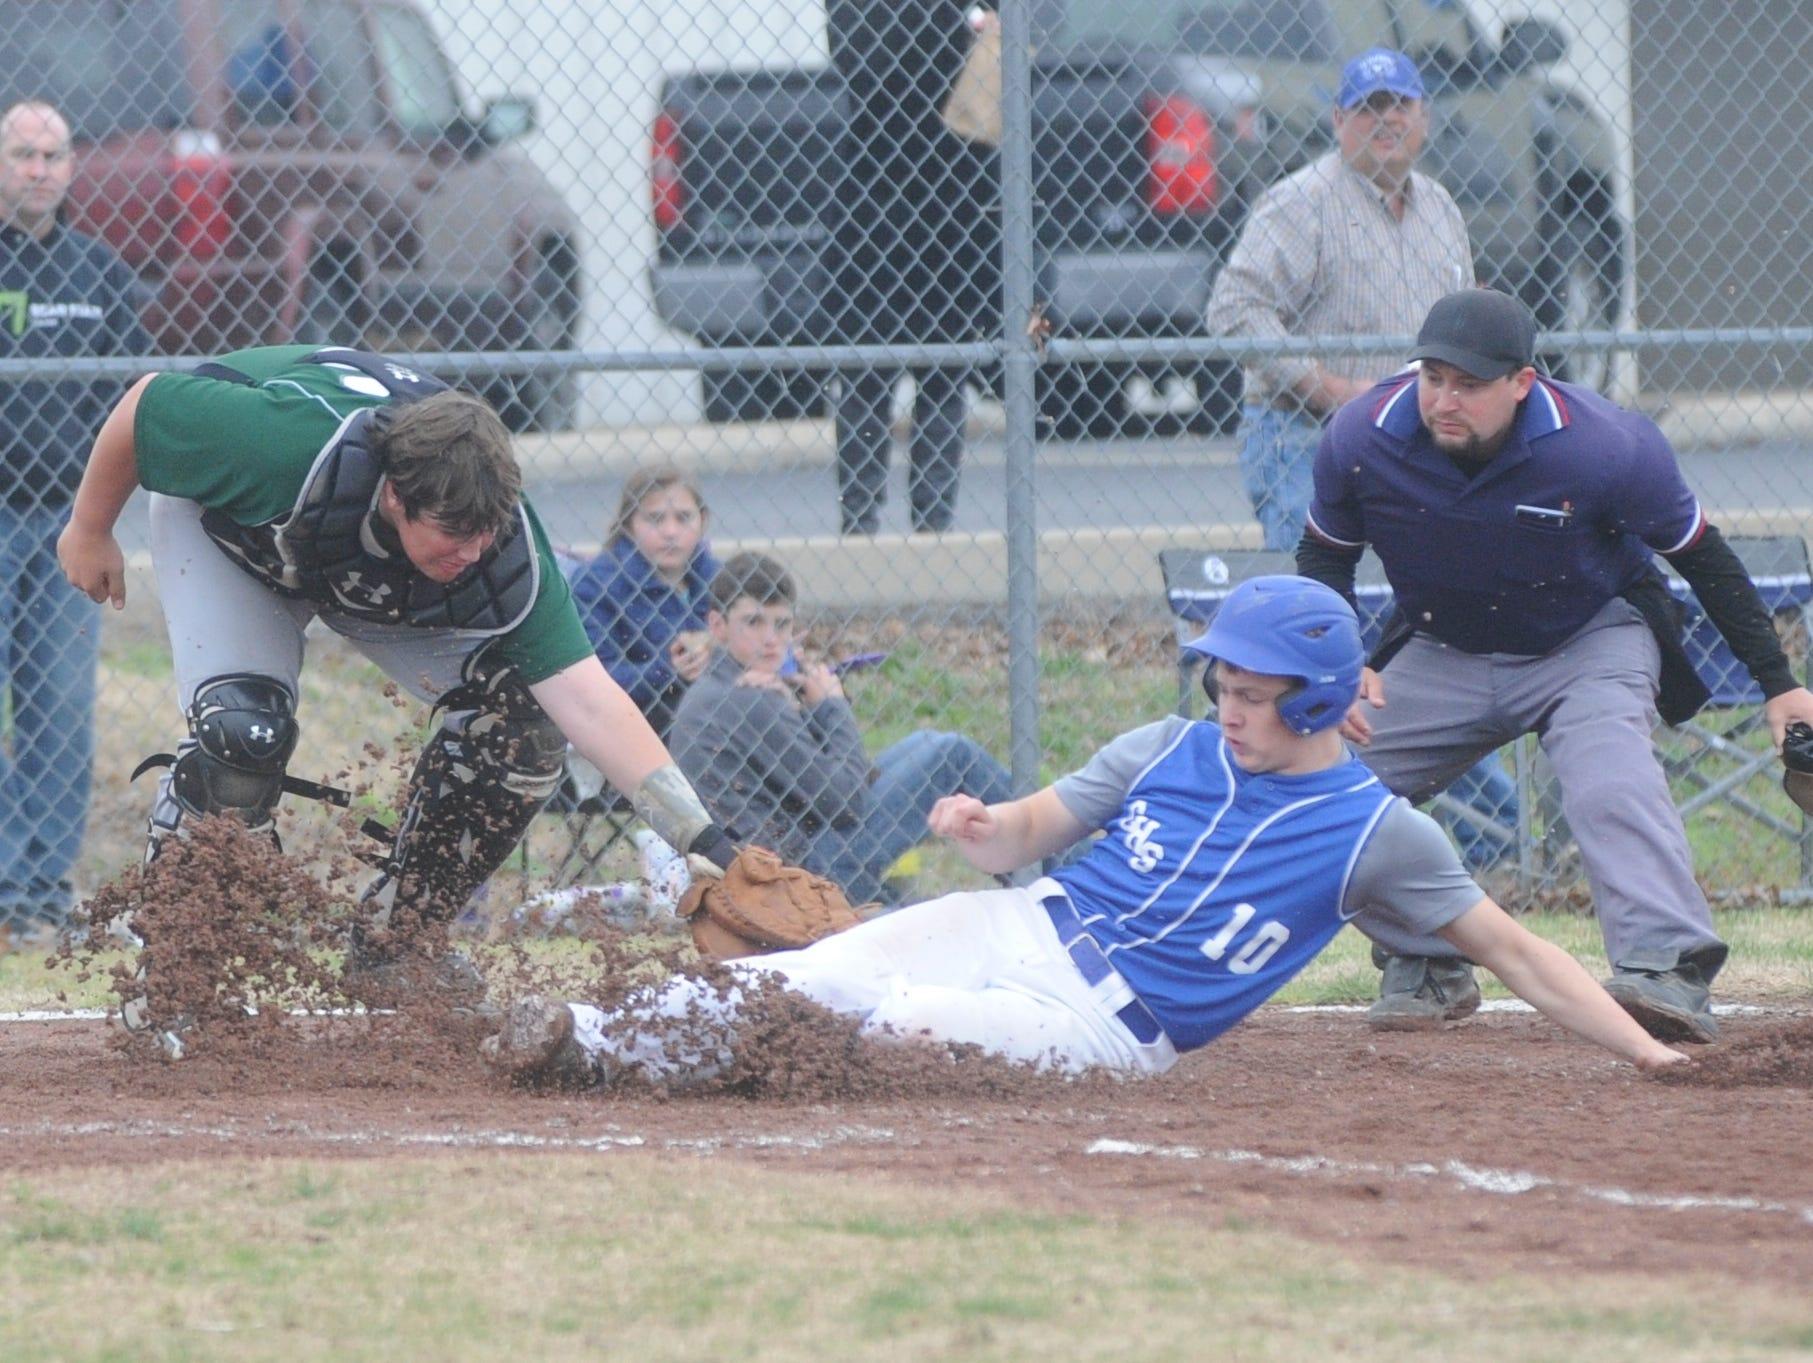 Cotter's Shawn White, middle, slides safely into home plate during a game earlier this season against Valley Springs. The Warriors picked up a 3-0 win over Melbourne on Saturday, moving them to the championship game of the 3A Region 3 Tournament at Harrison.